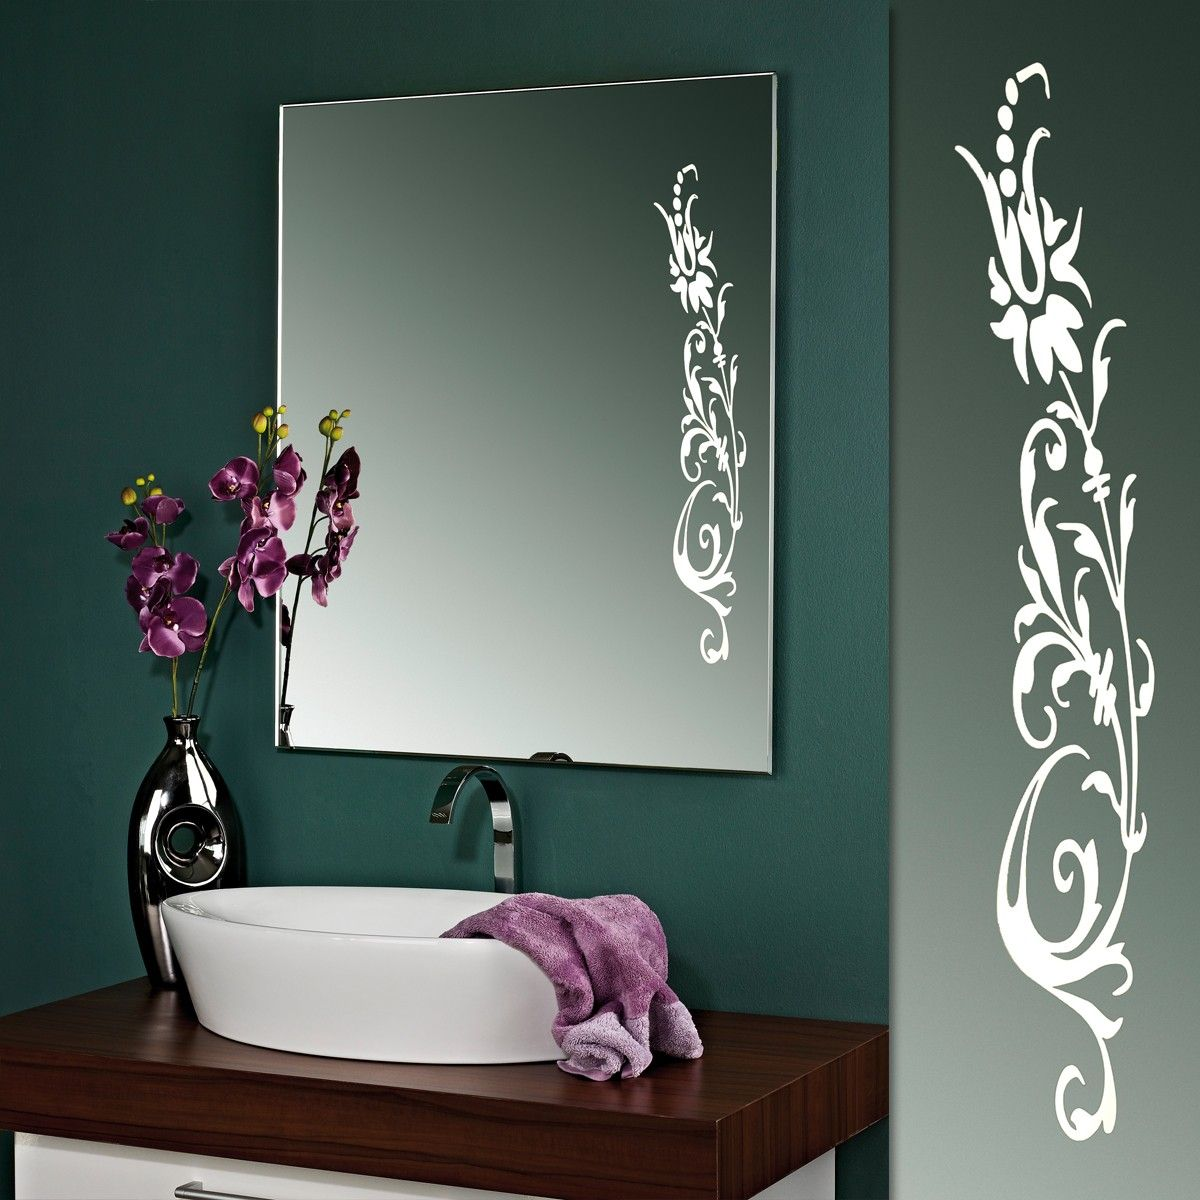 Designspiegel Dahlia In 2020 With Images Fancy Mirrors Glass Design Lighted Bathroom Mirror